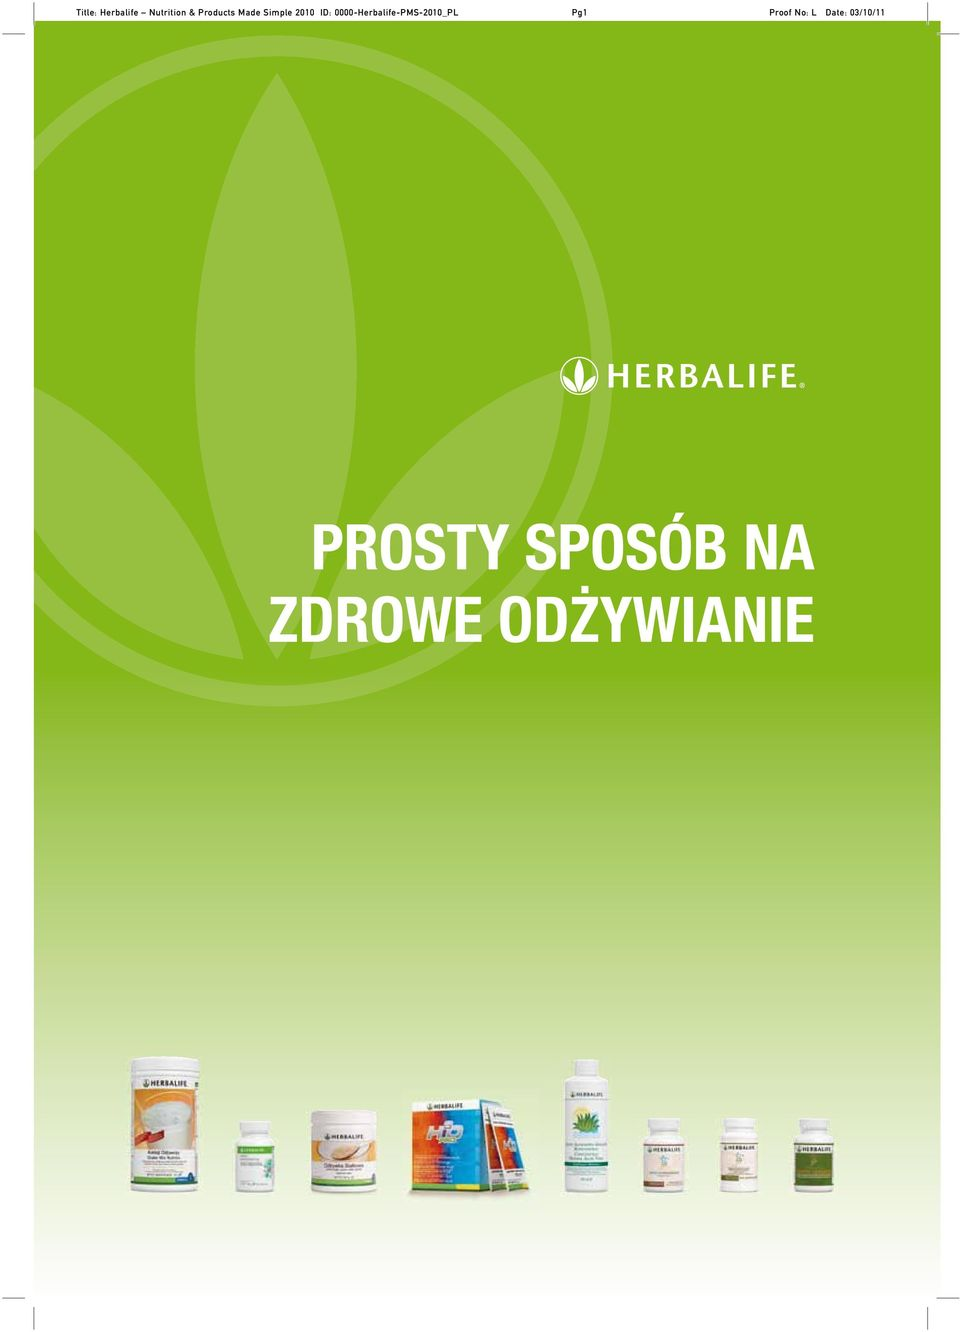 0000-Herbalife-PMS-2010_PL Pg1 Proof